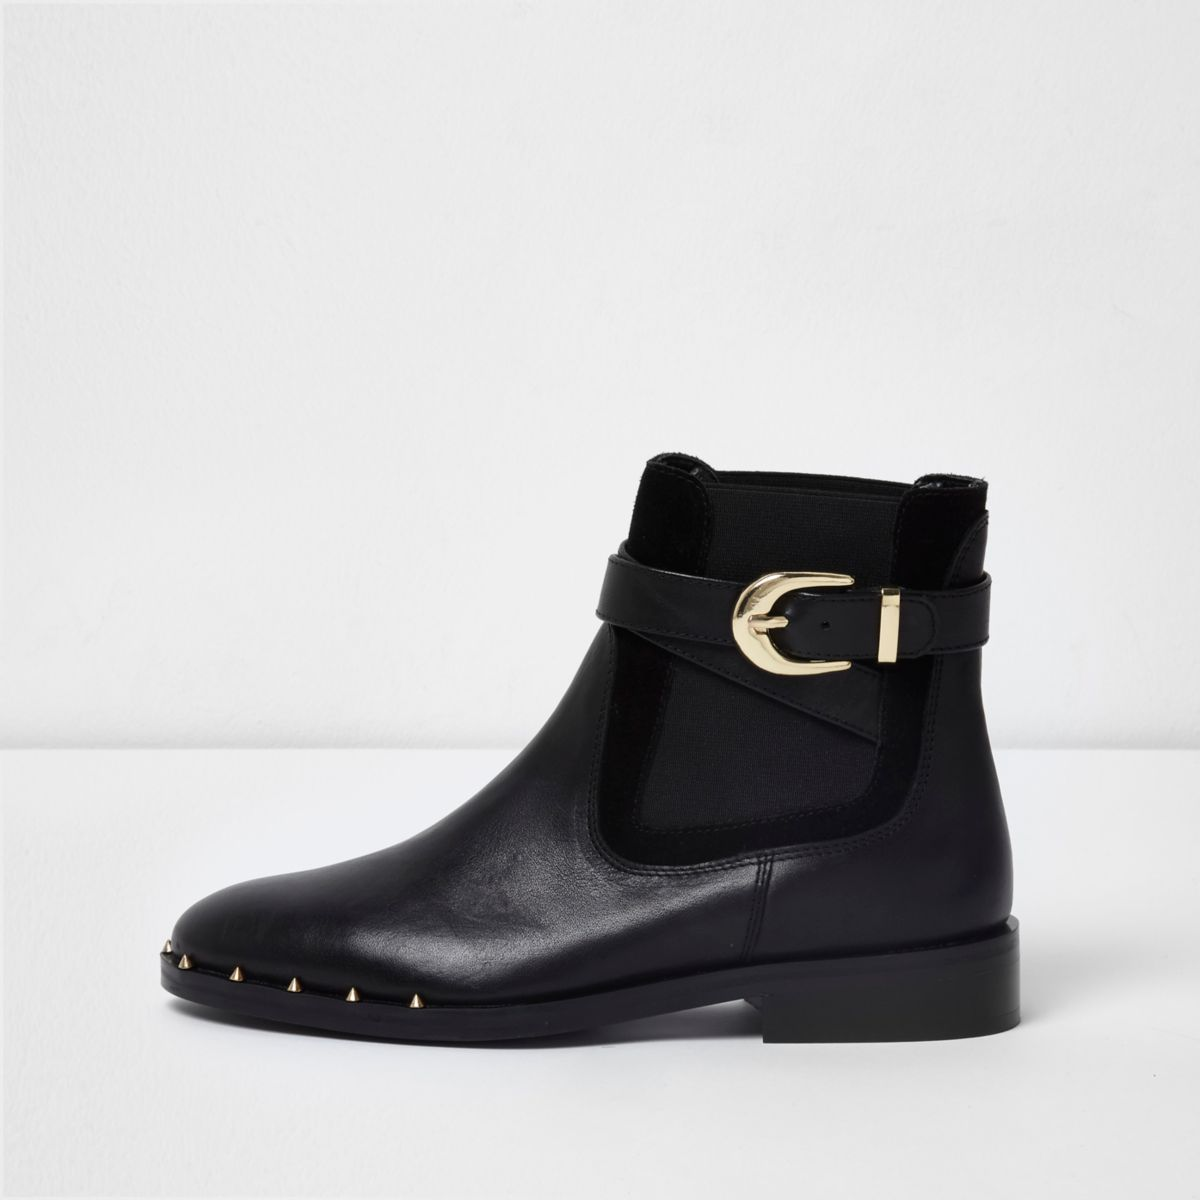 black leather buckle chelsea boots boots shoes